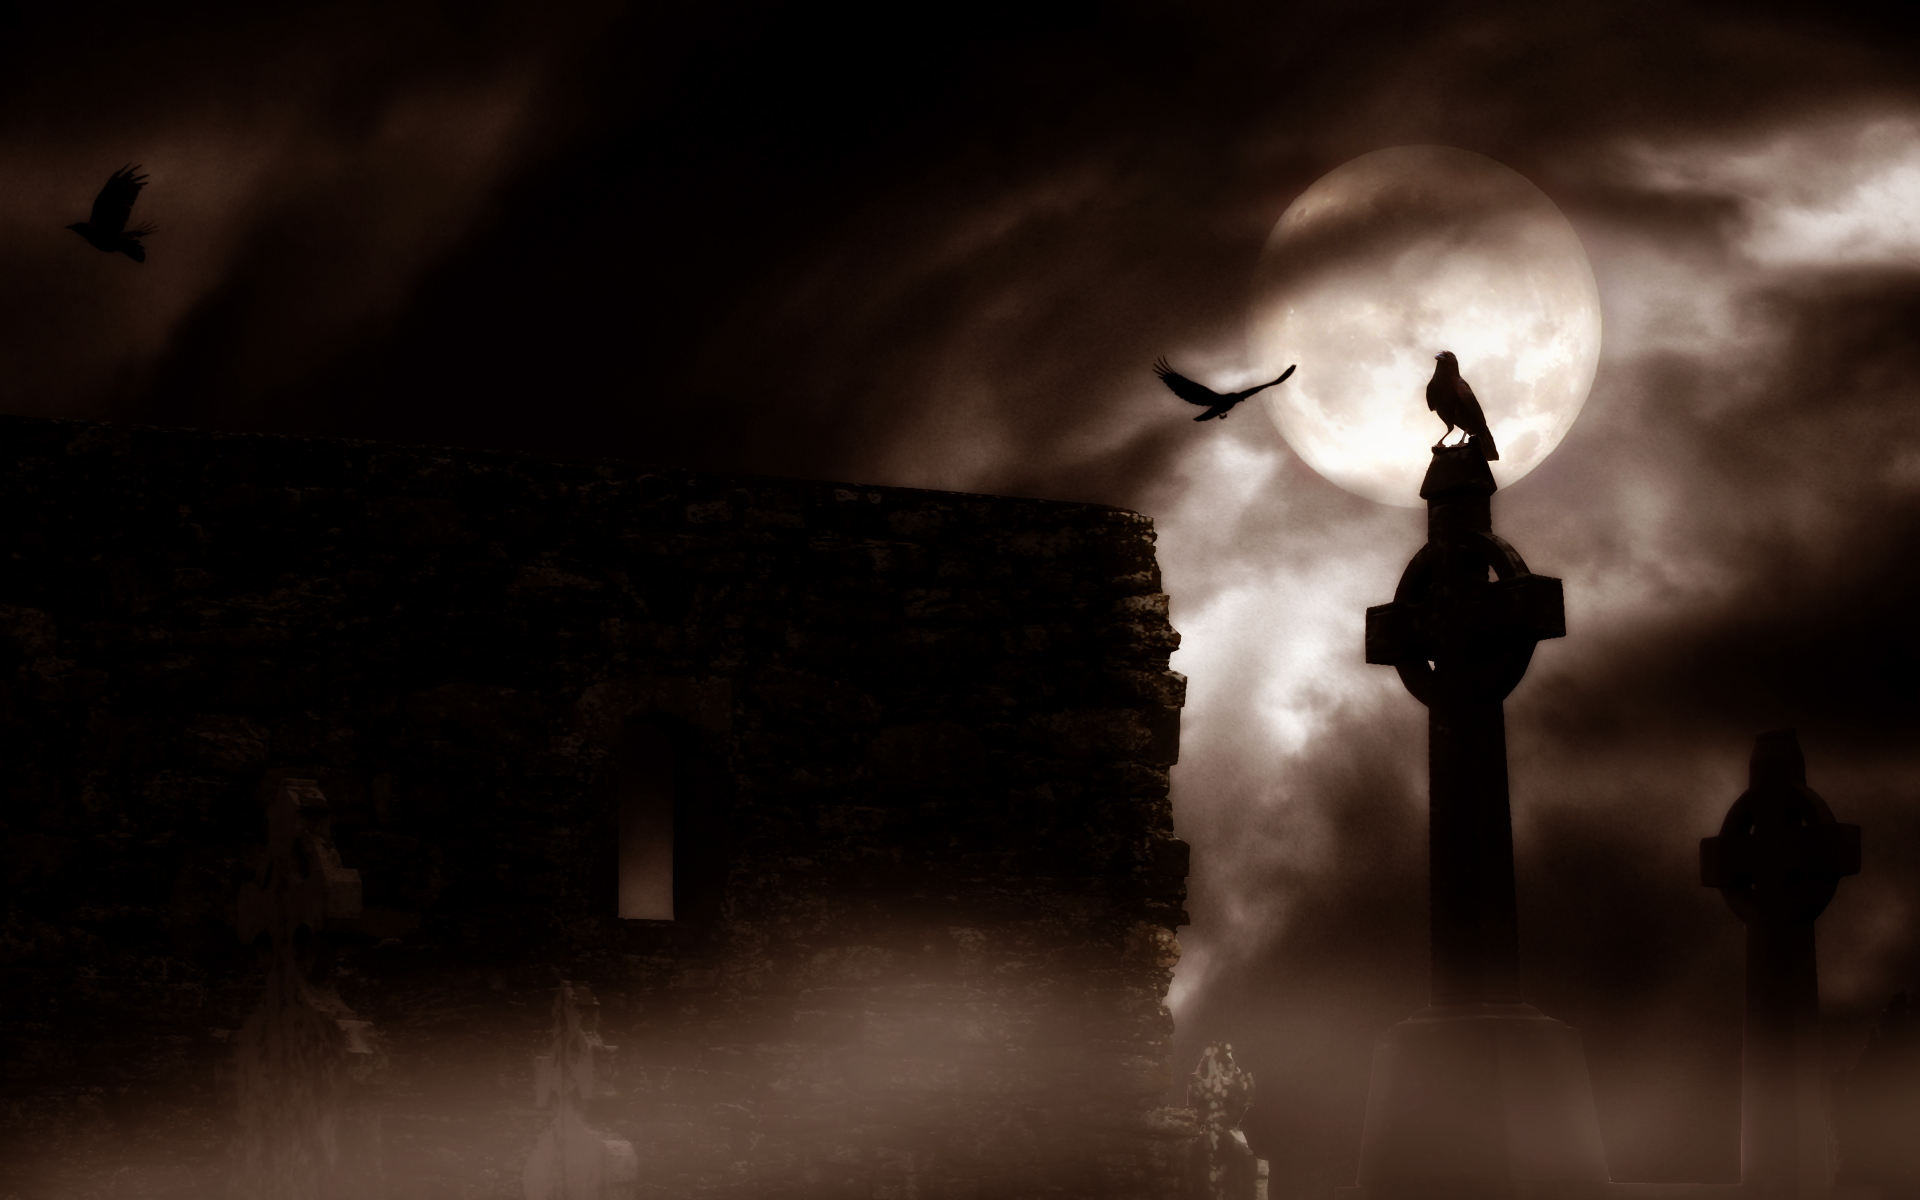 Dark Gothic Wallpapers